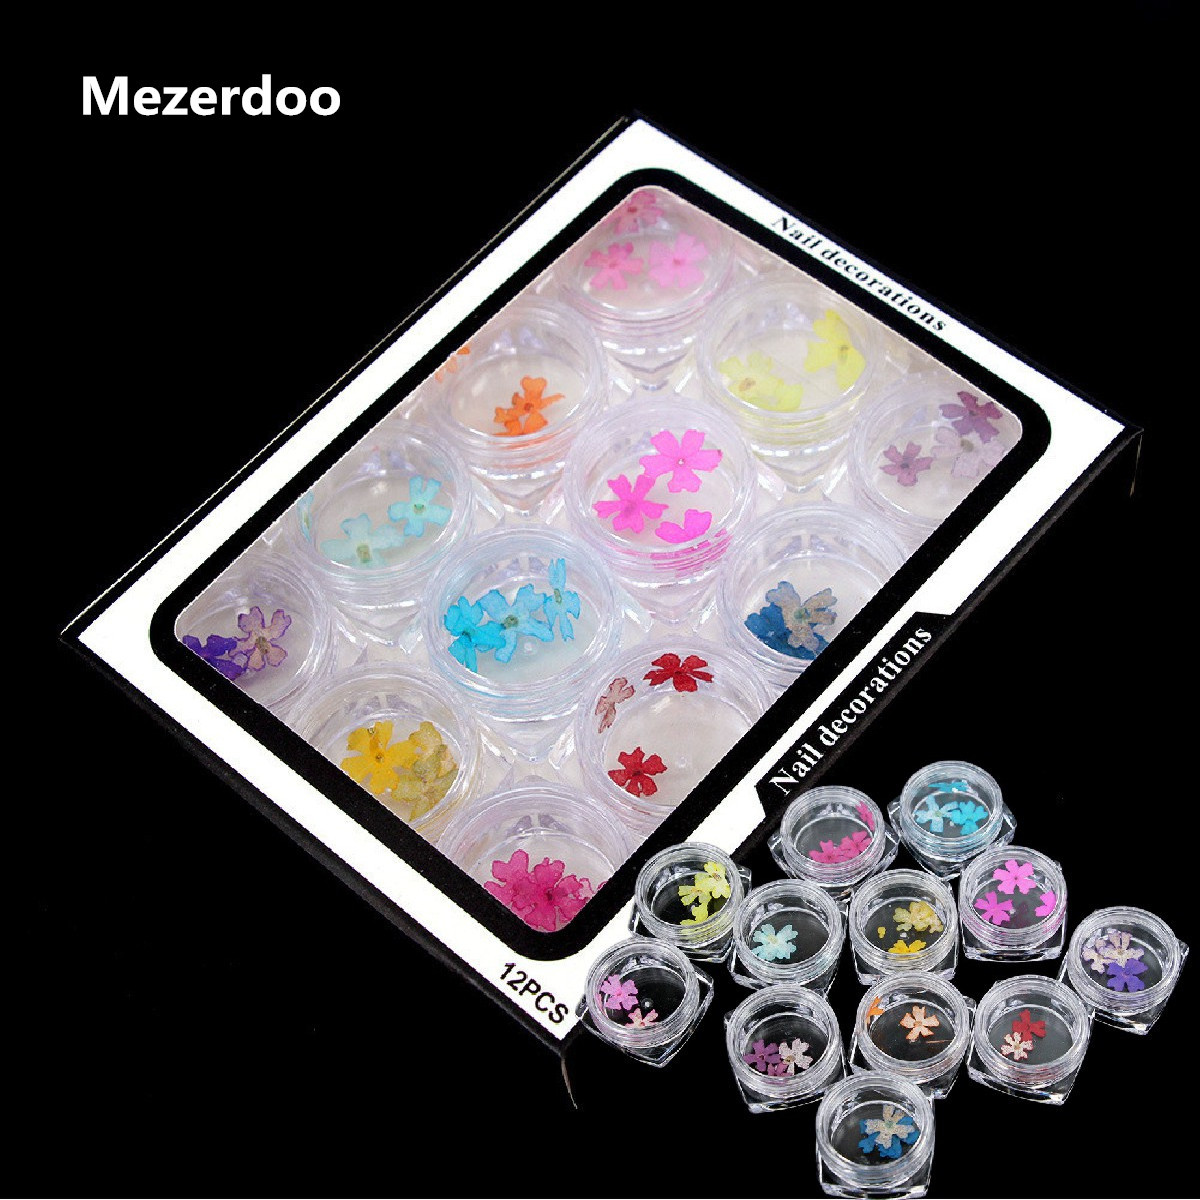 12 Boxes Small Beauty Cherry Blossom Nail Dried Flowers Decorations 36pcs Natural UV Gel Polish Tips Manicure Art пуф dreambag круг cherry